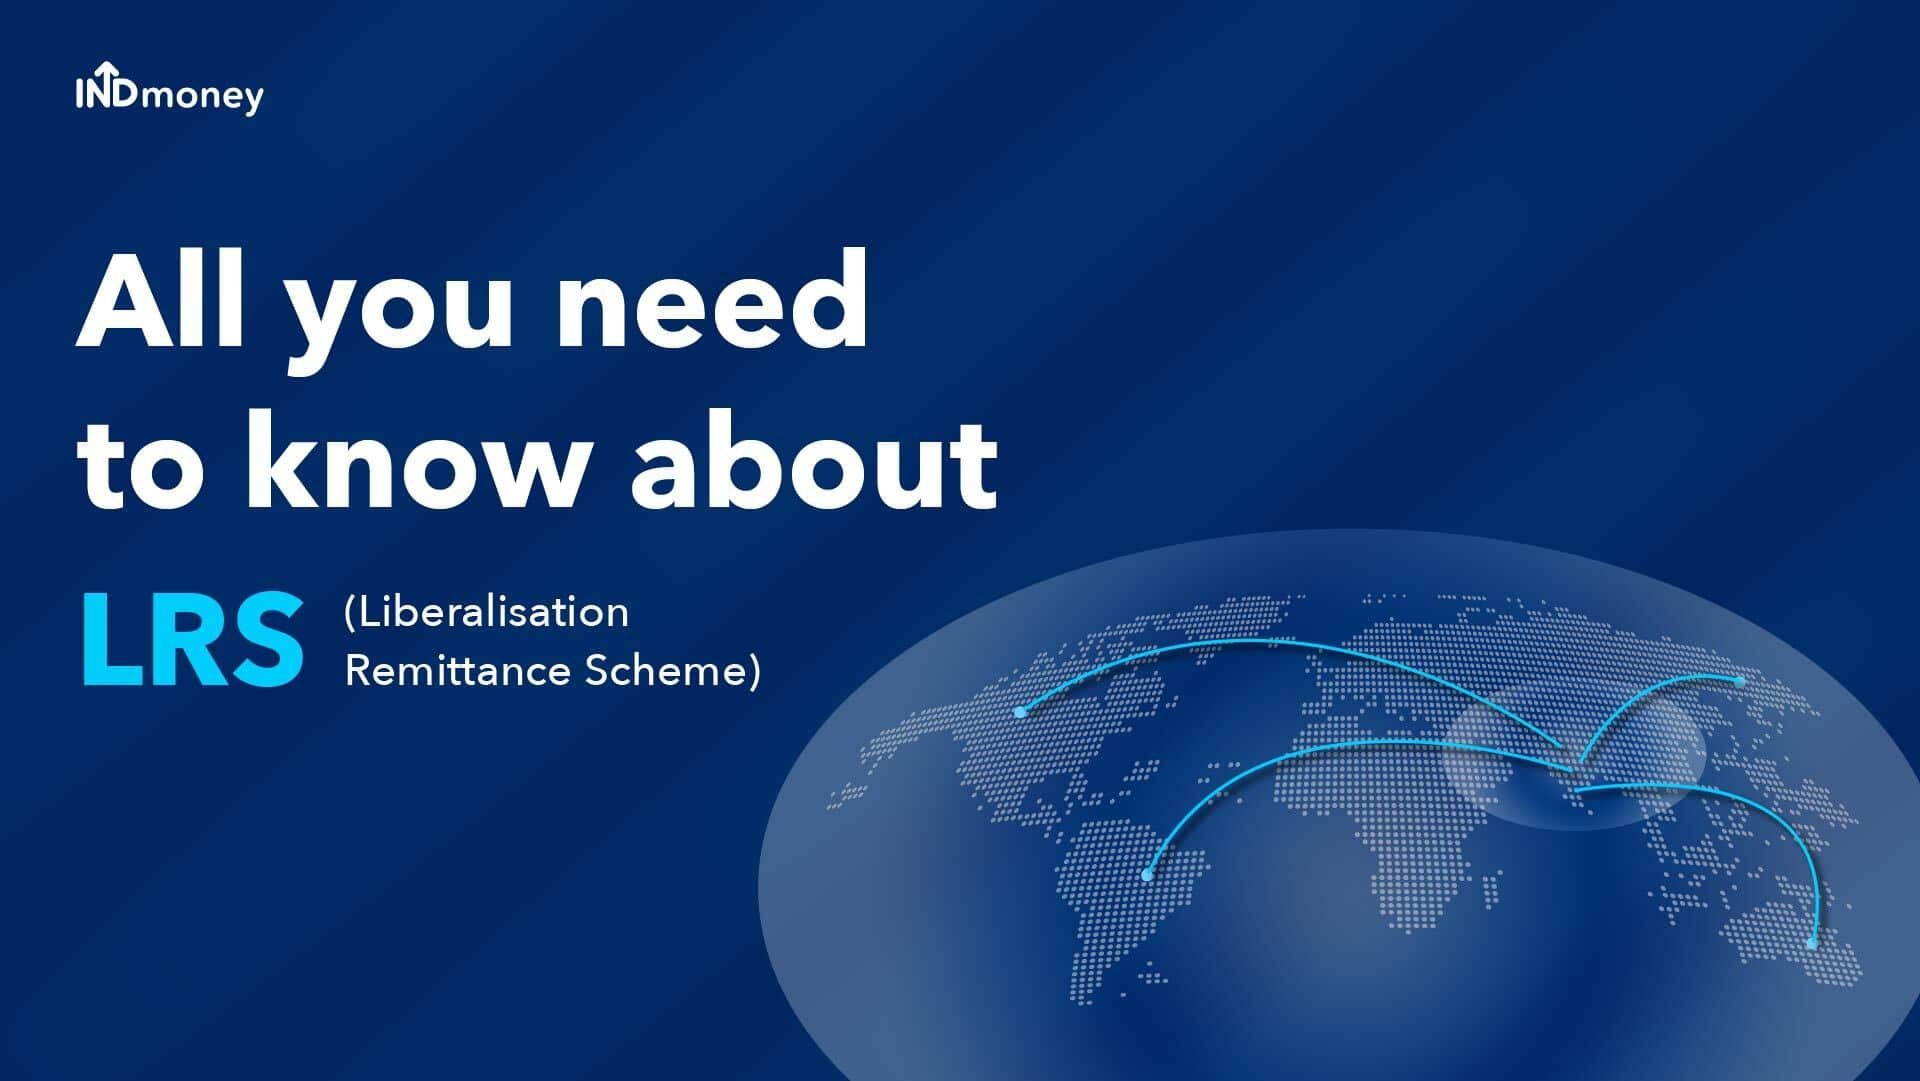 LRS (Liberalised Remittance Scheme): What is LRS? (A Detailed Guide)